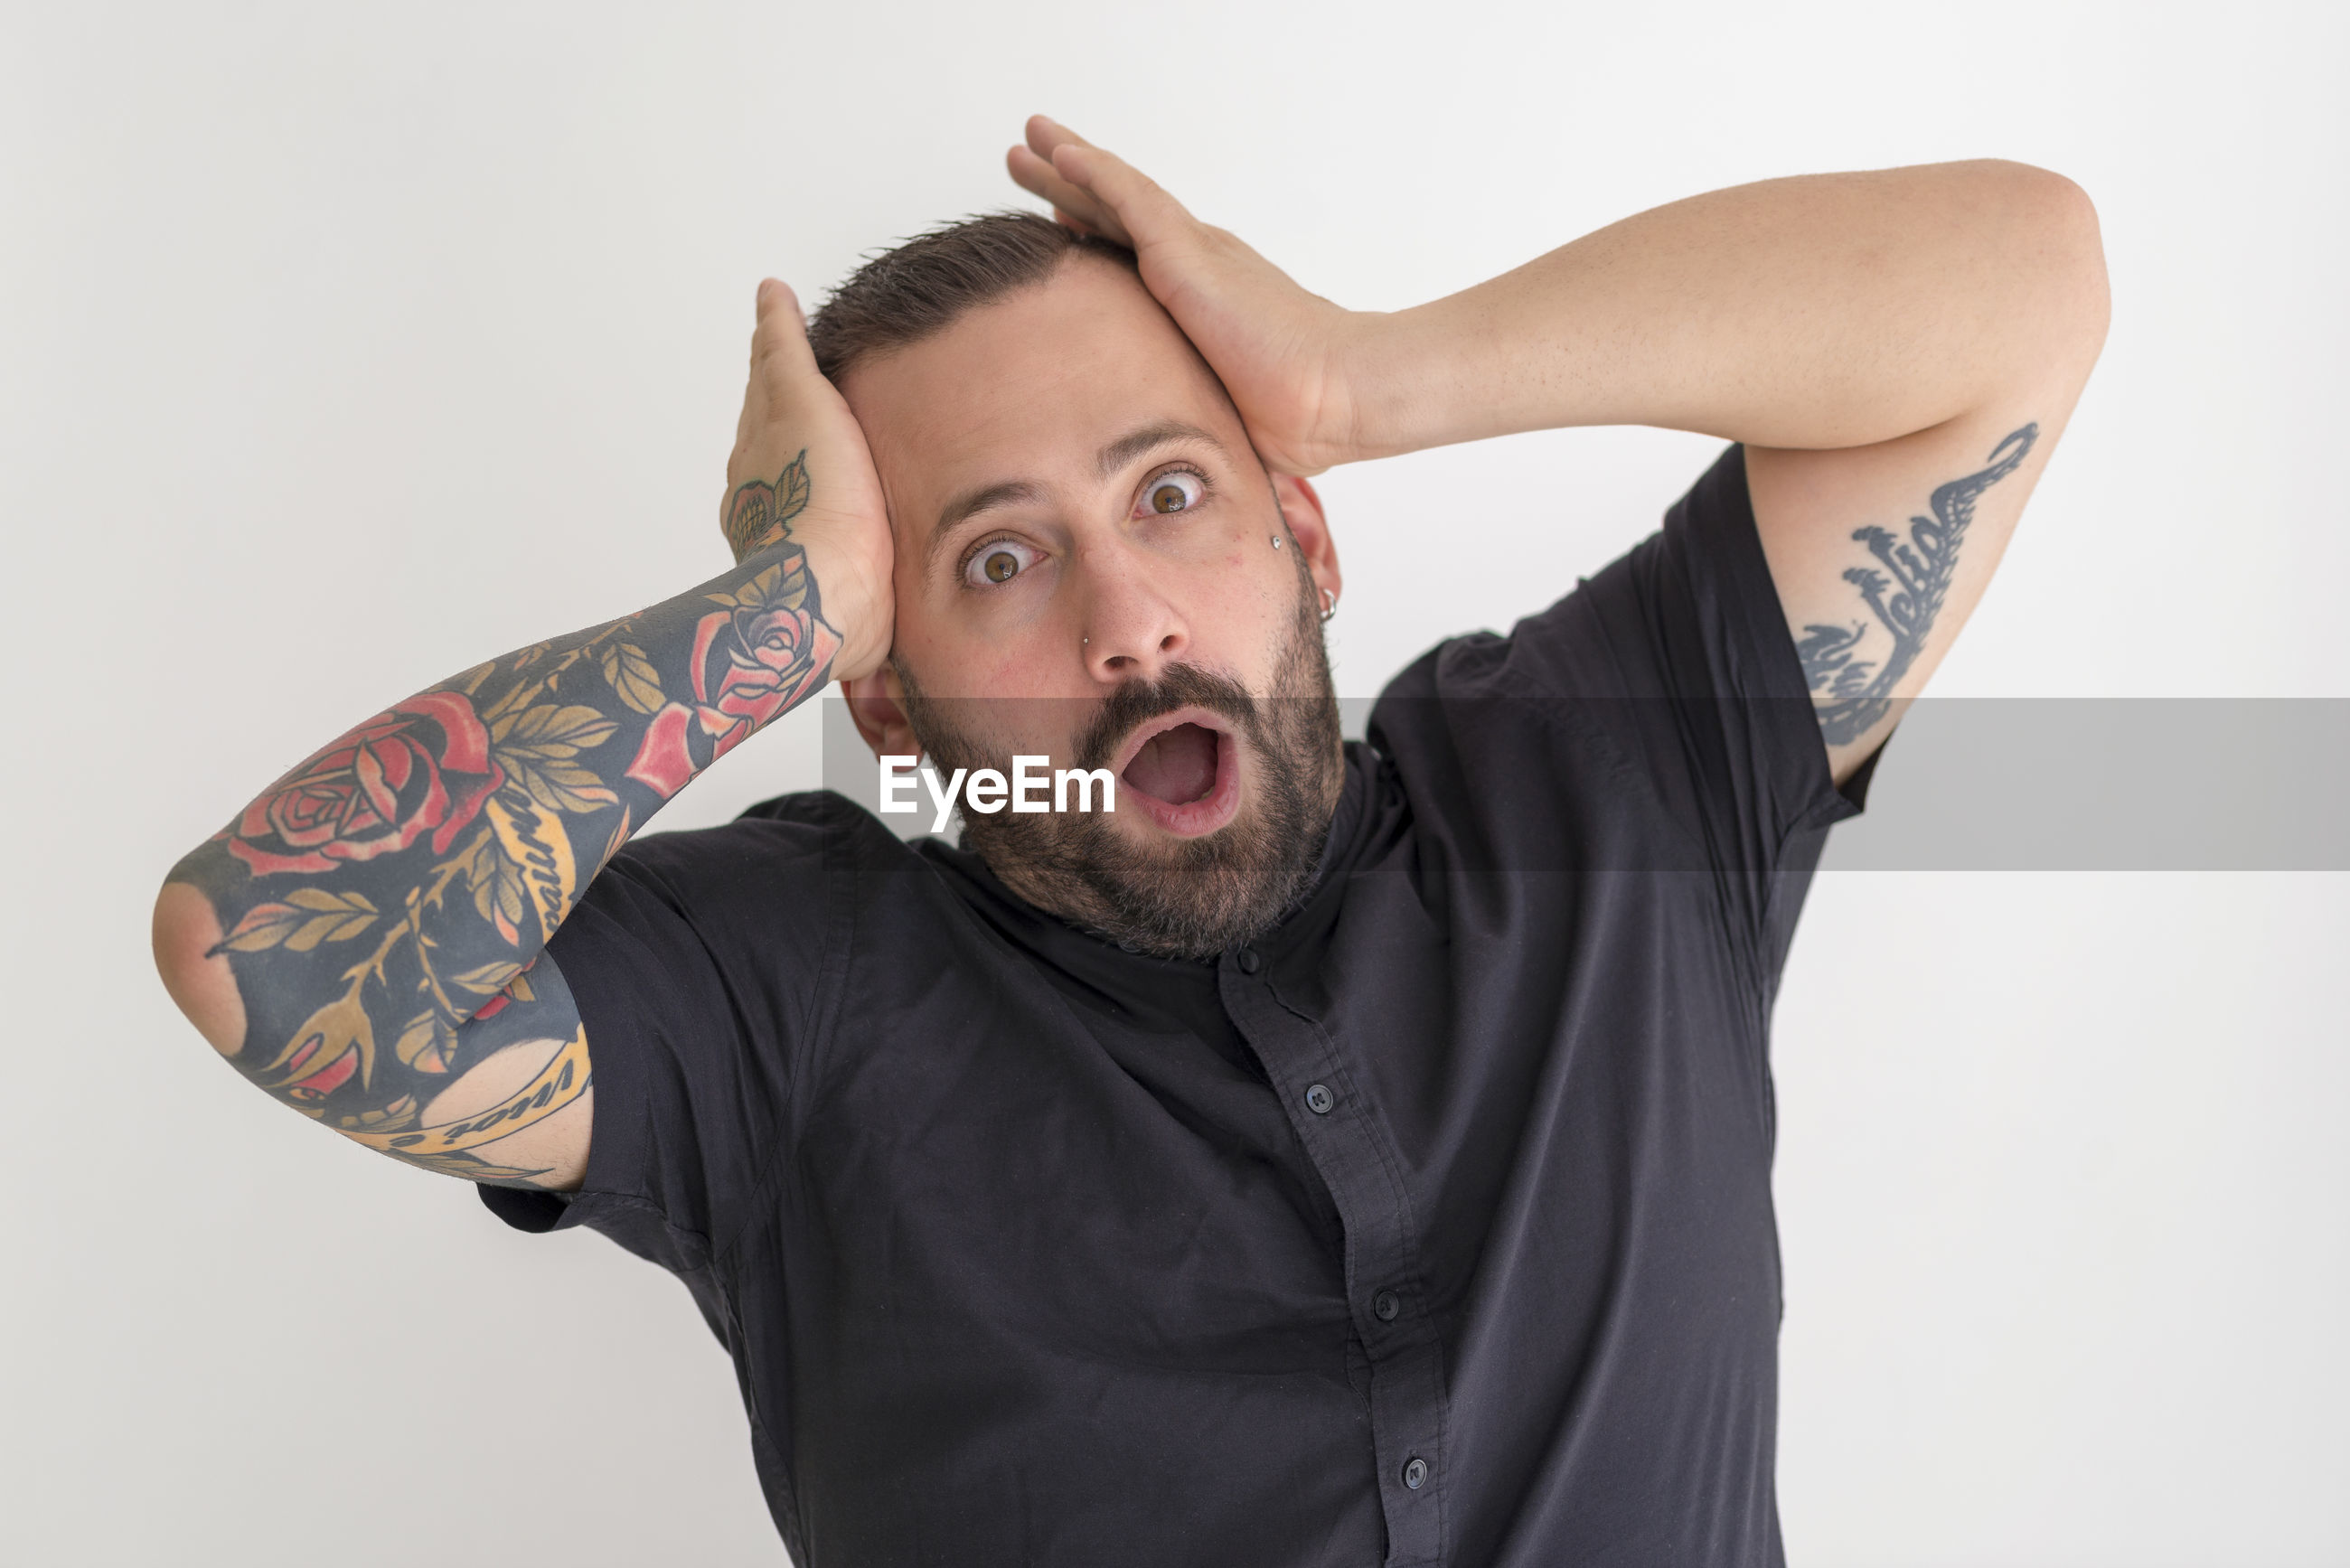 Portrait of shocked man standing against white background